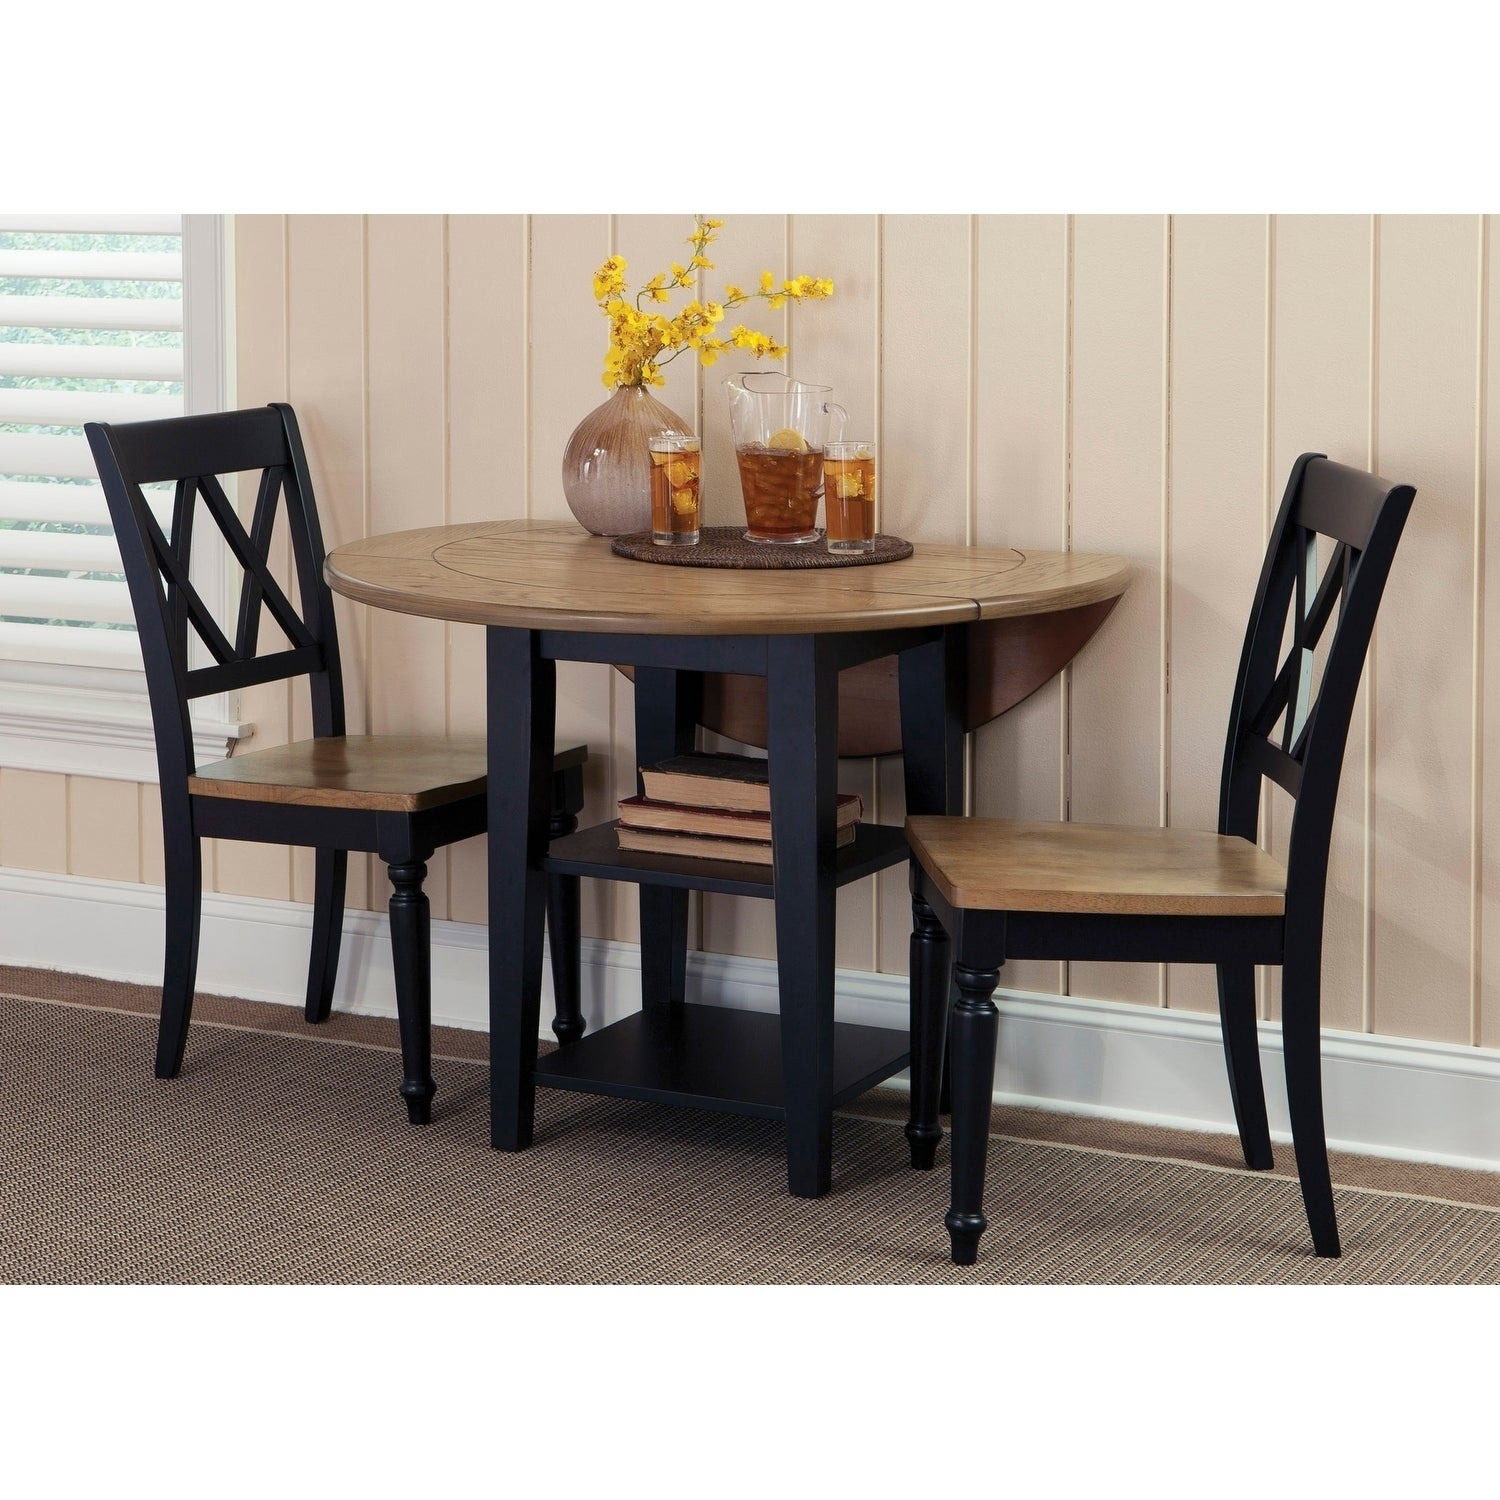 Merveilleux Shop Al Fresco II Driftwood And Black Opt 3 Piece Drop Leaf Table Set   On  Sale   Free Shipping Today   Overstock.com   18620075